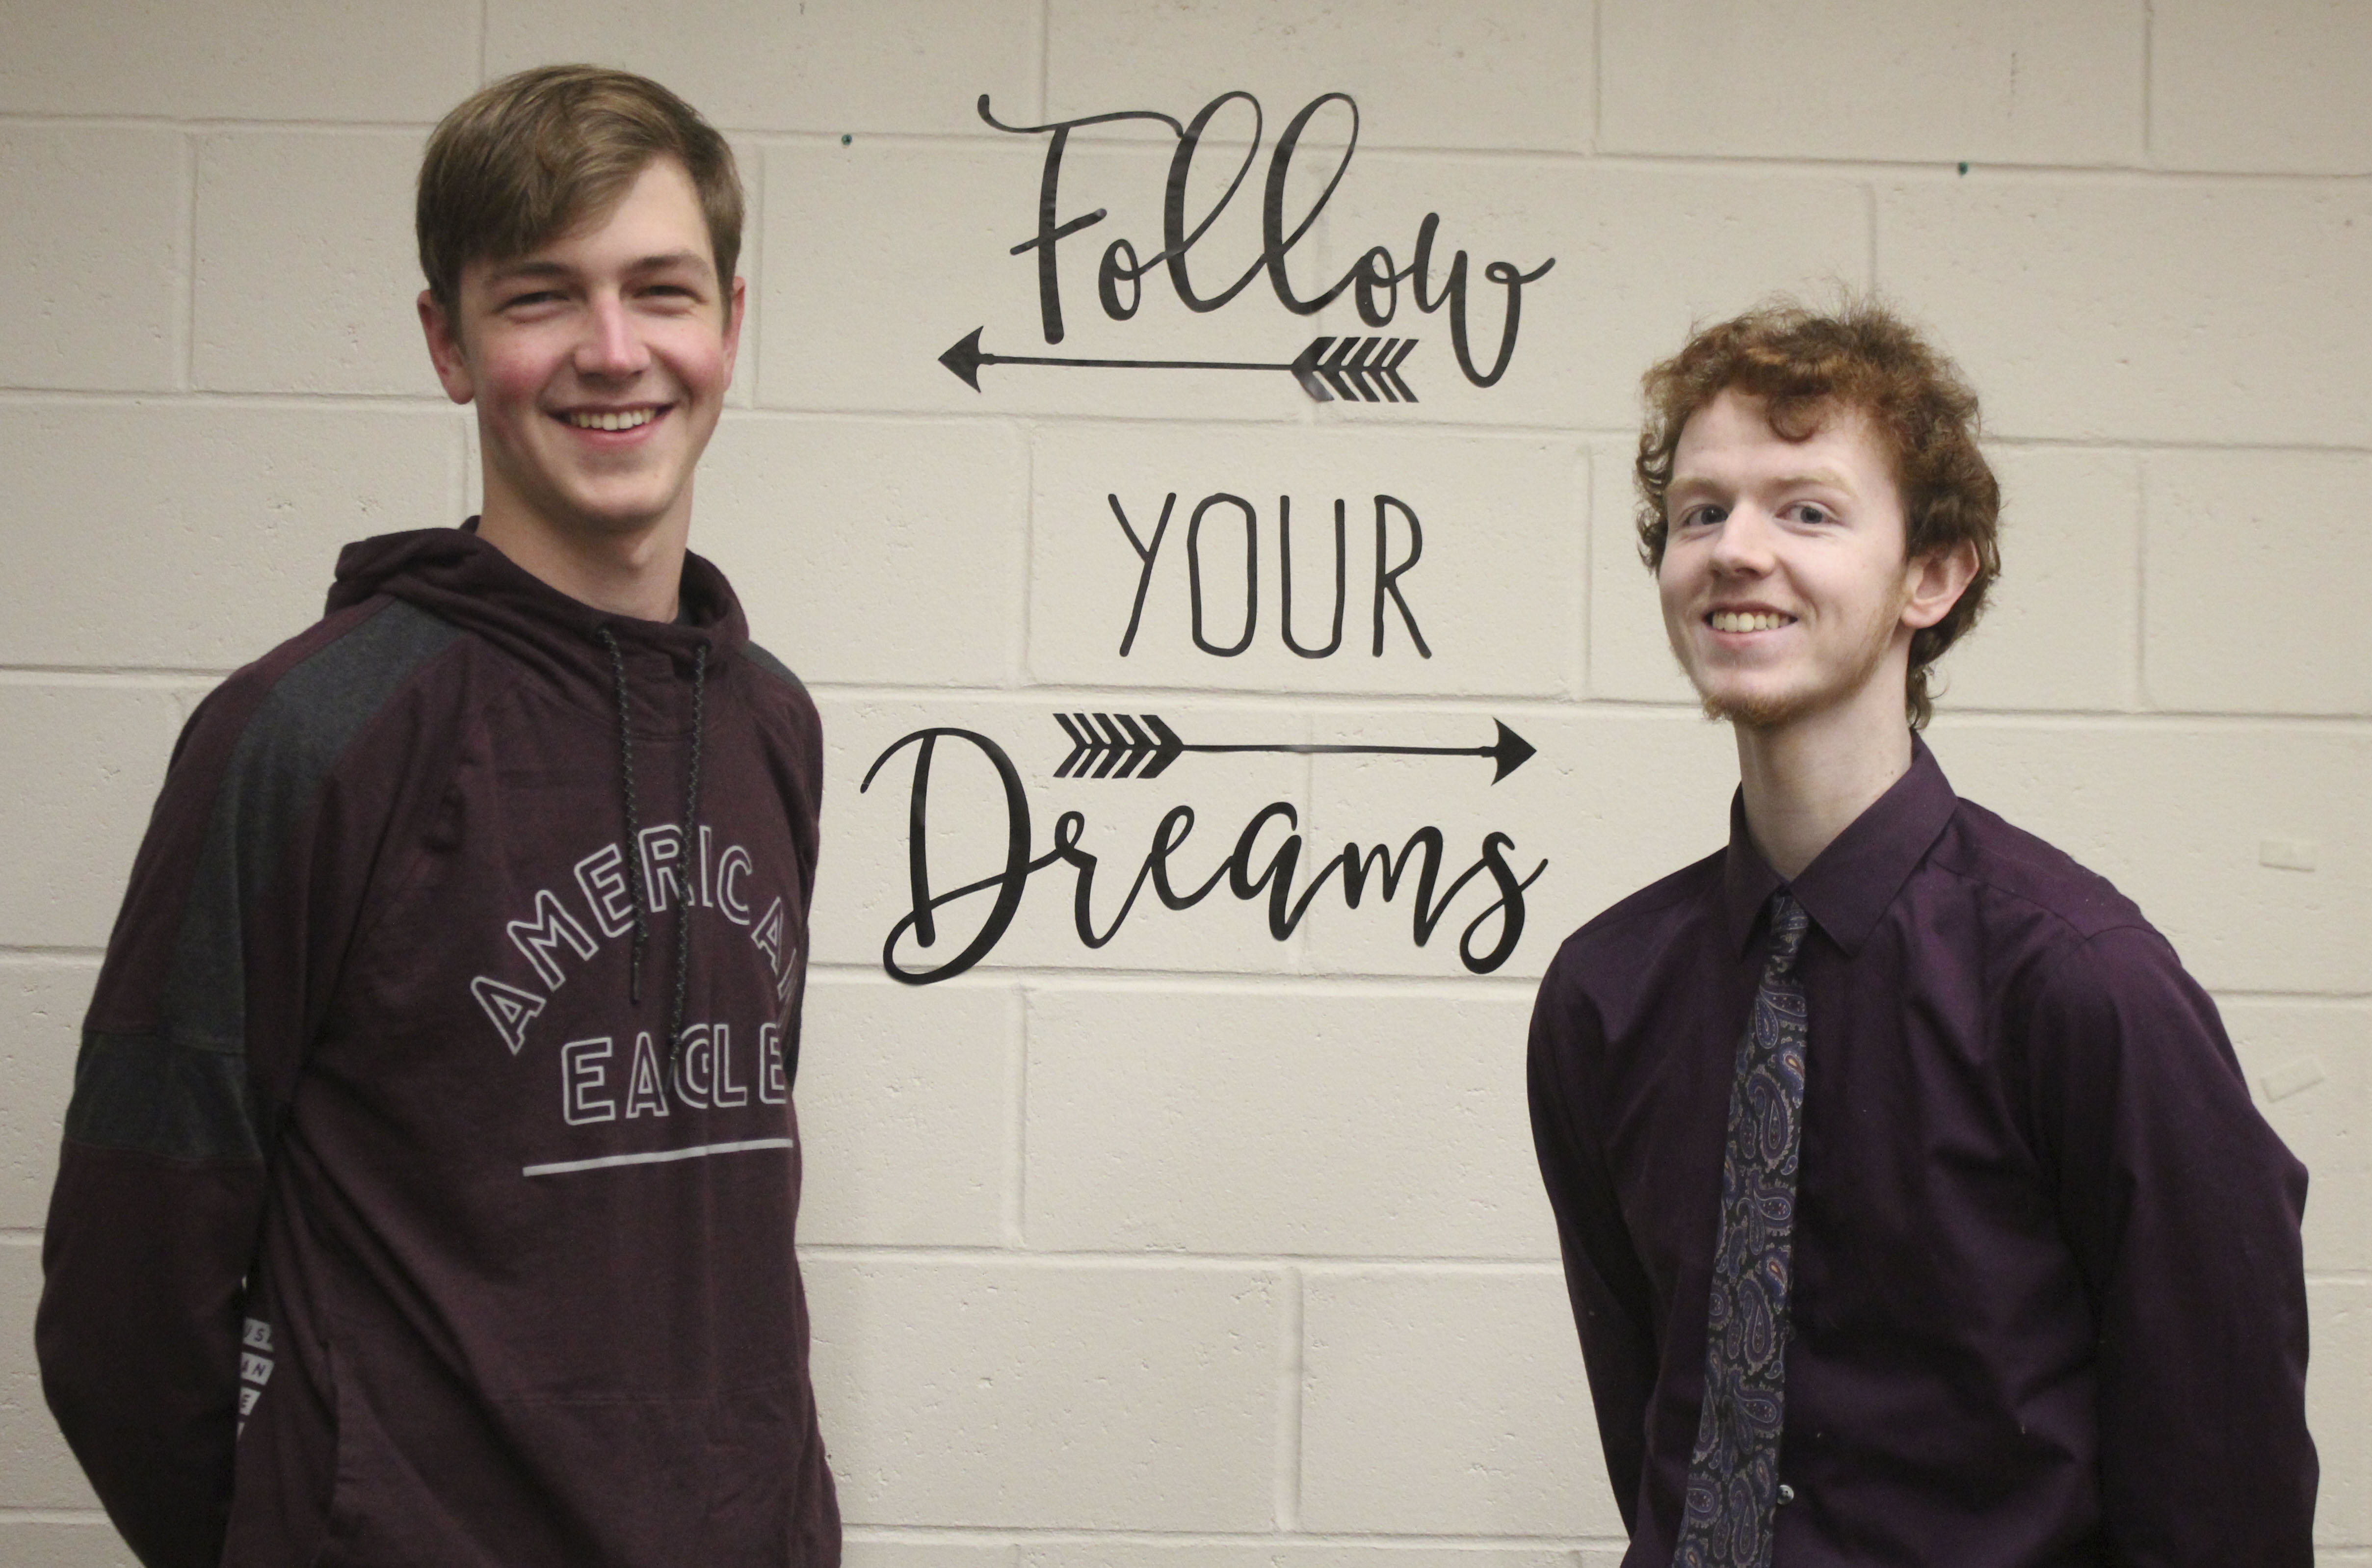 Monticello High School juniors Jeff Carlson (left) and Robby Holmes were nominated to participate in the All-State Individu- al Speech Festival, which was held March 25 at the University of Northern Iowa. Carlson was nomi- nated in the Radio News category, and Holmes was chosen for Solo Musical Theatre. (Photo by Pete Temple)